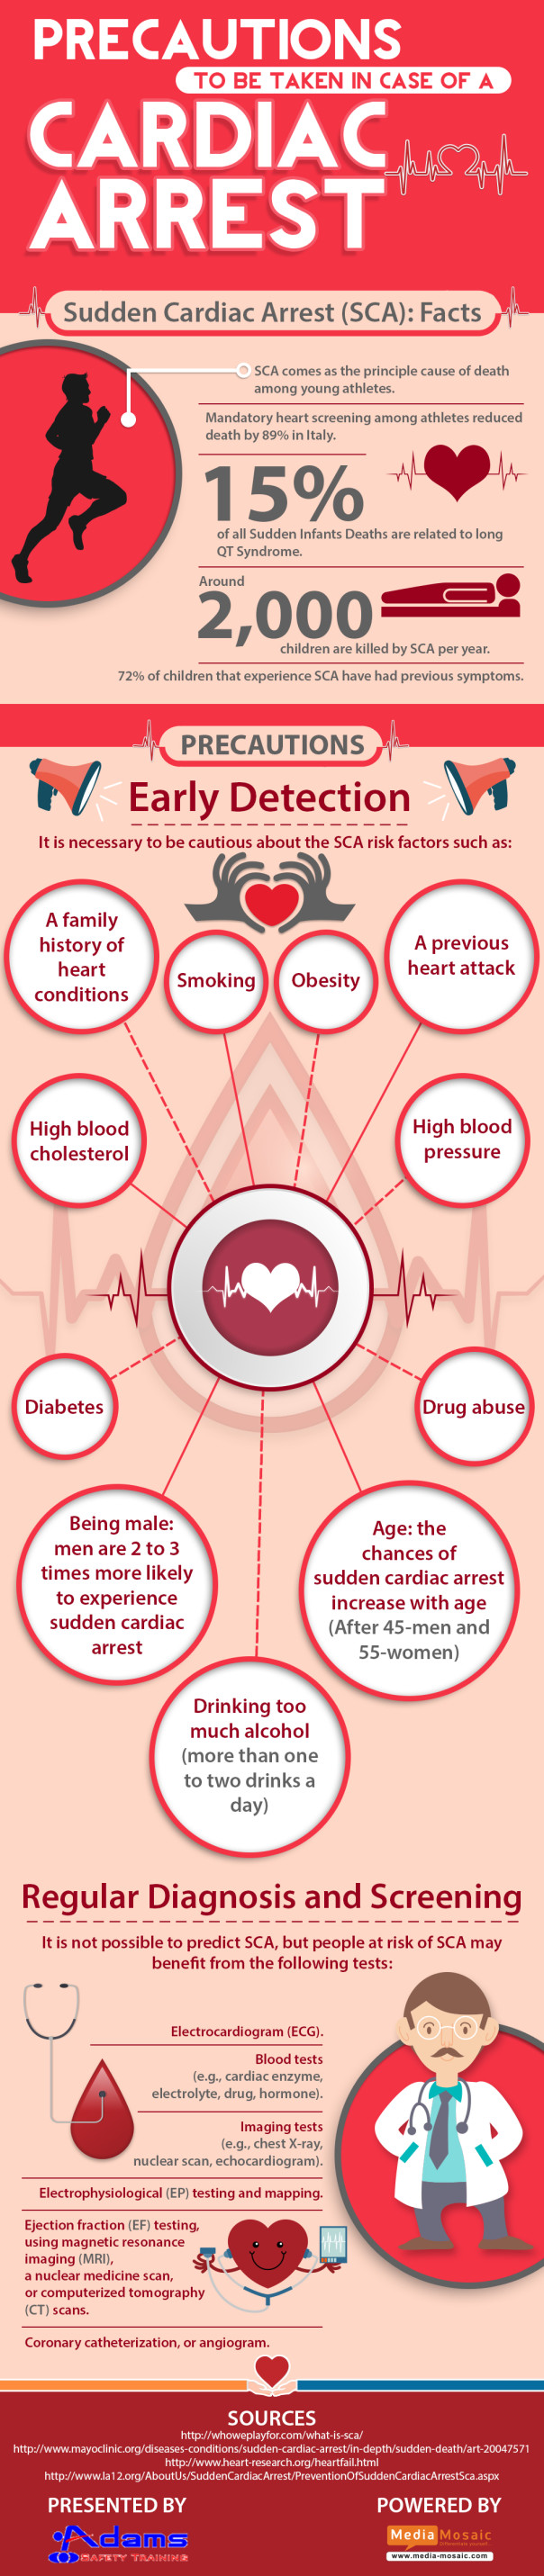 Sudden Cardiac Arrest Infographic